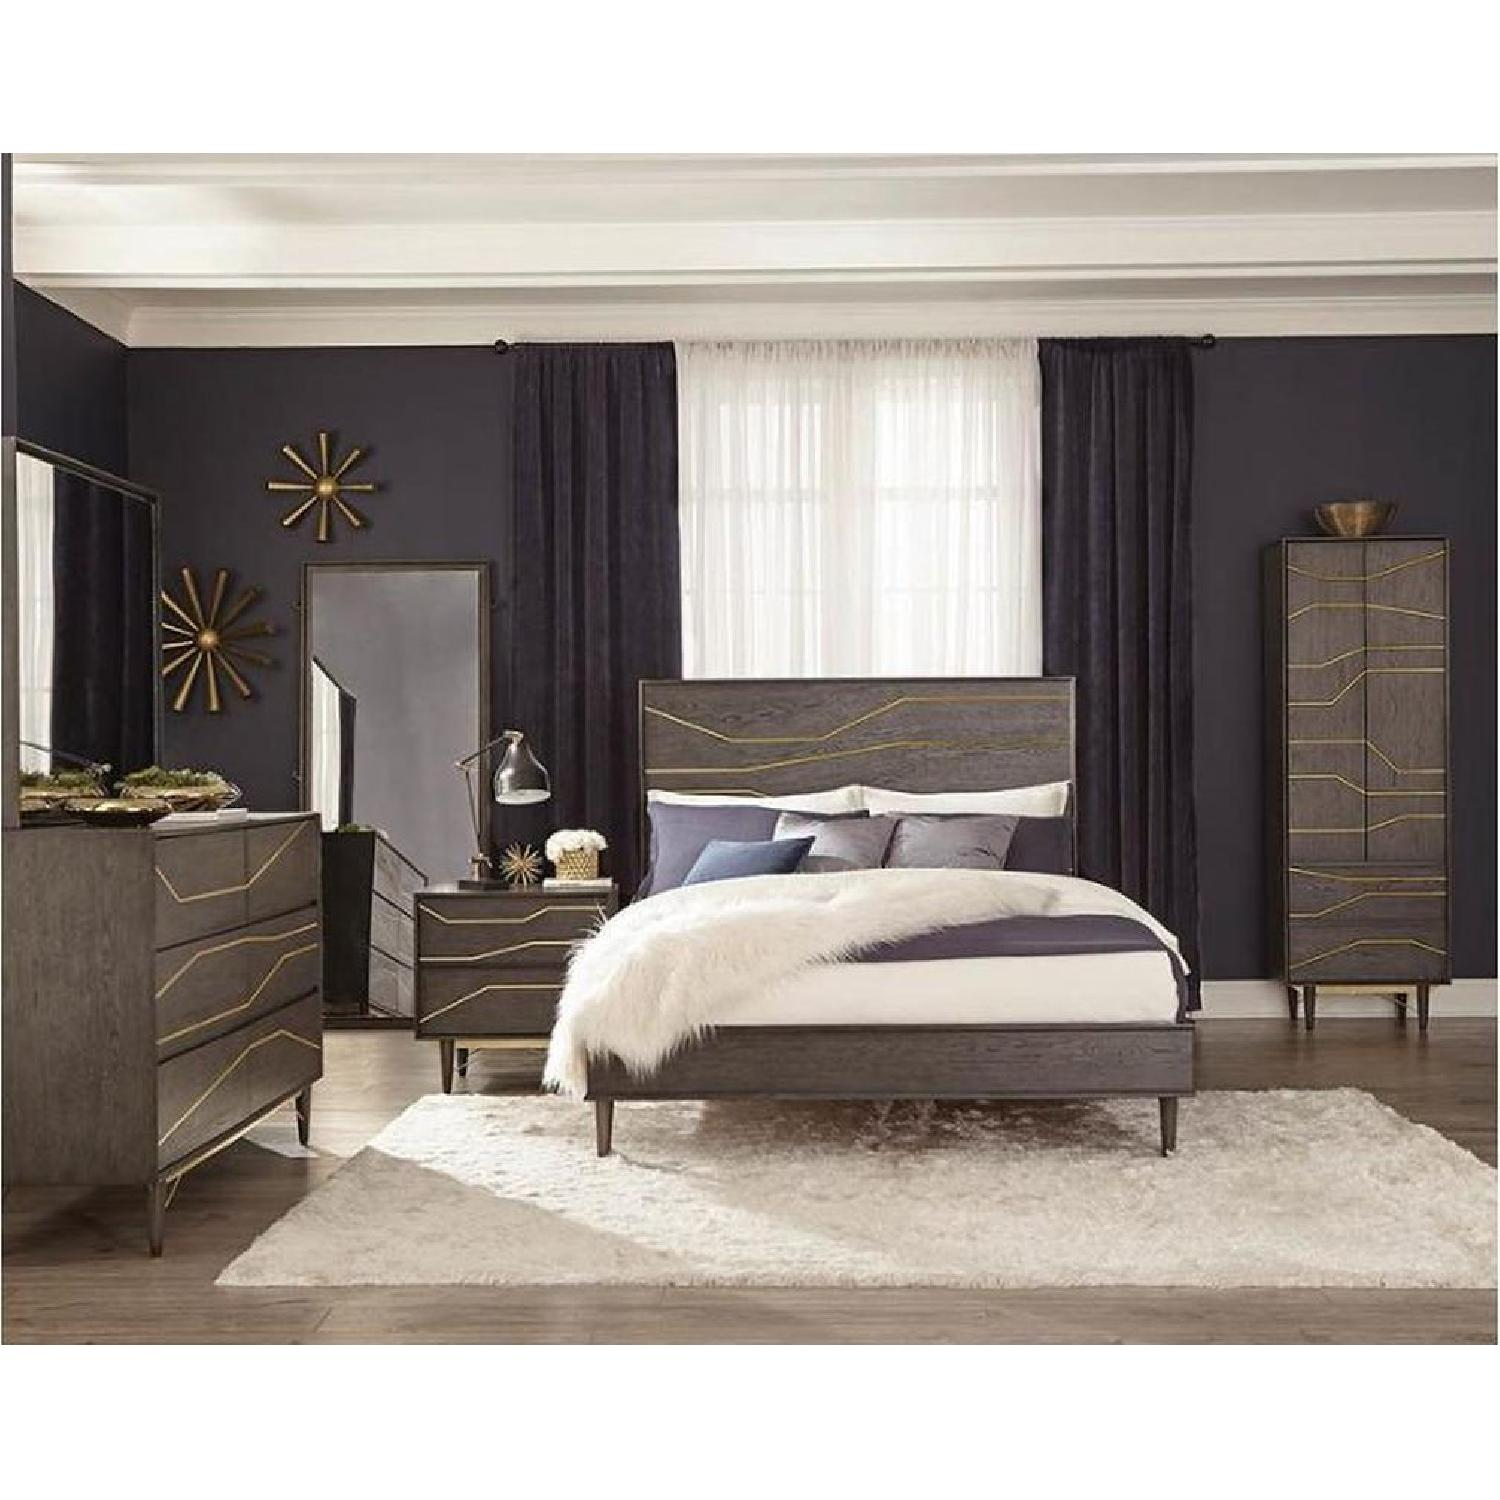 Modern Dresser in Graphite Finish w/ Gold Color Inlay - image-4